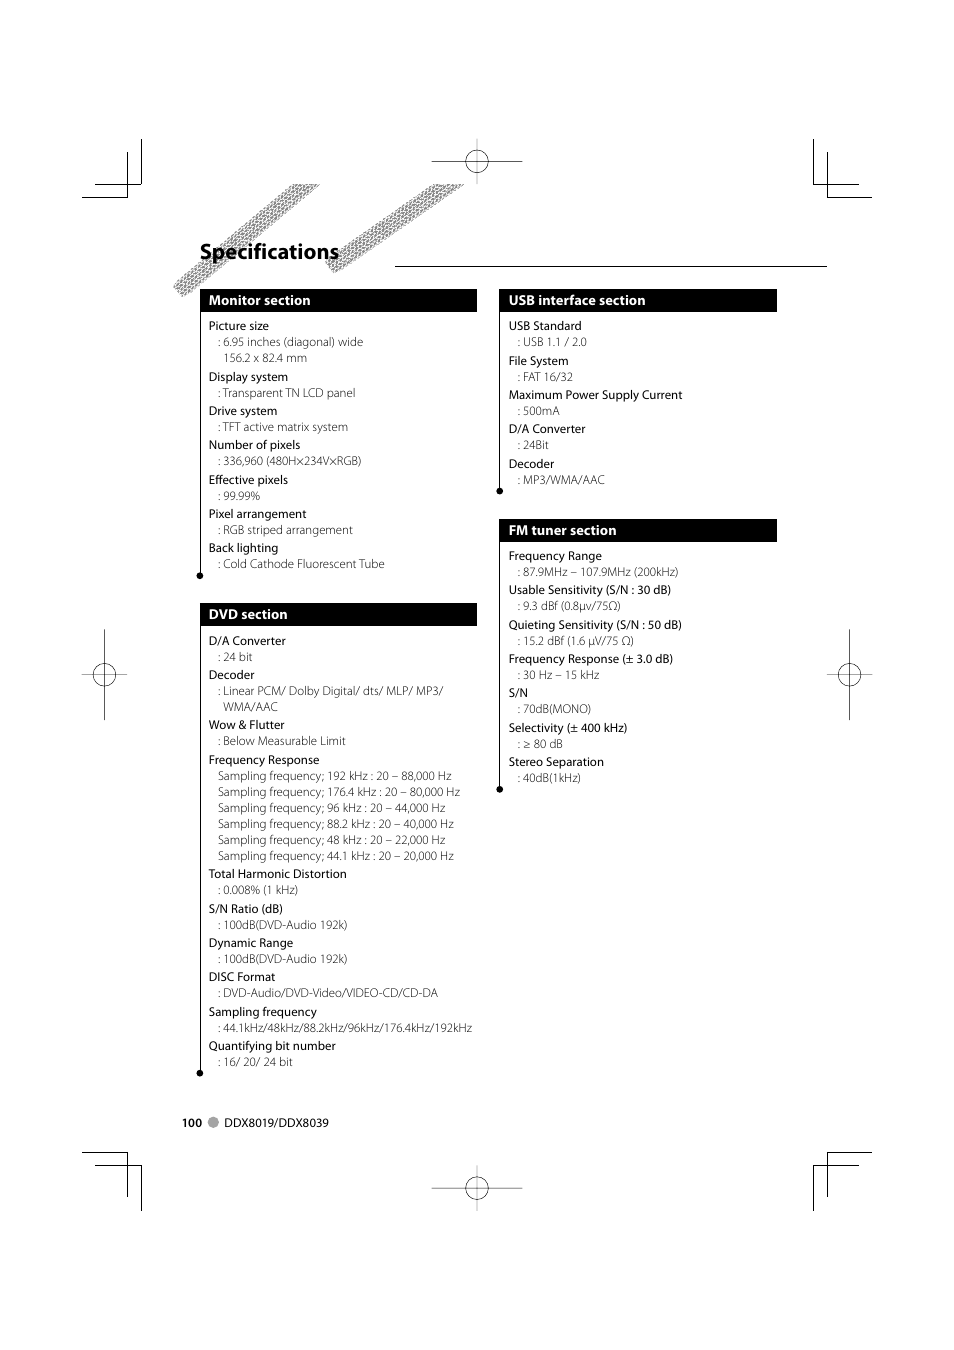 Specifications | Kenwood DDX8039 User Manual | Page 100 / 104